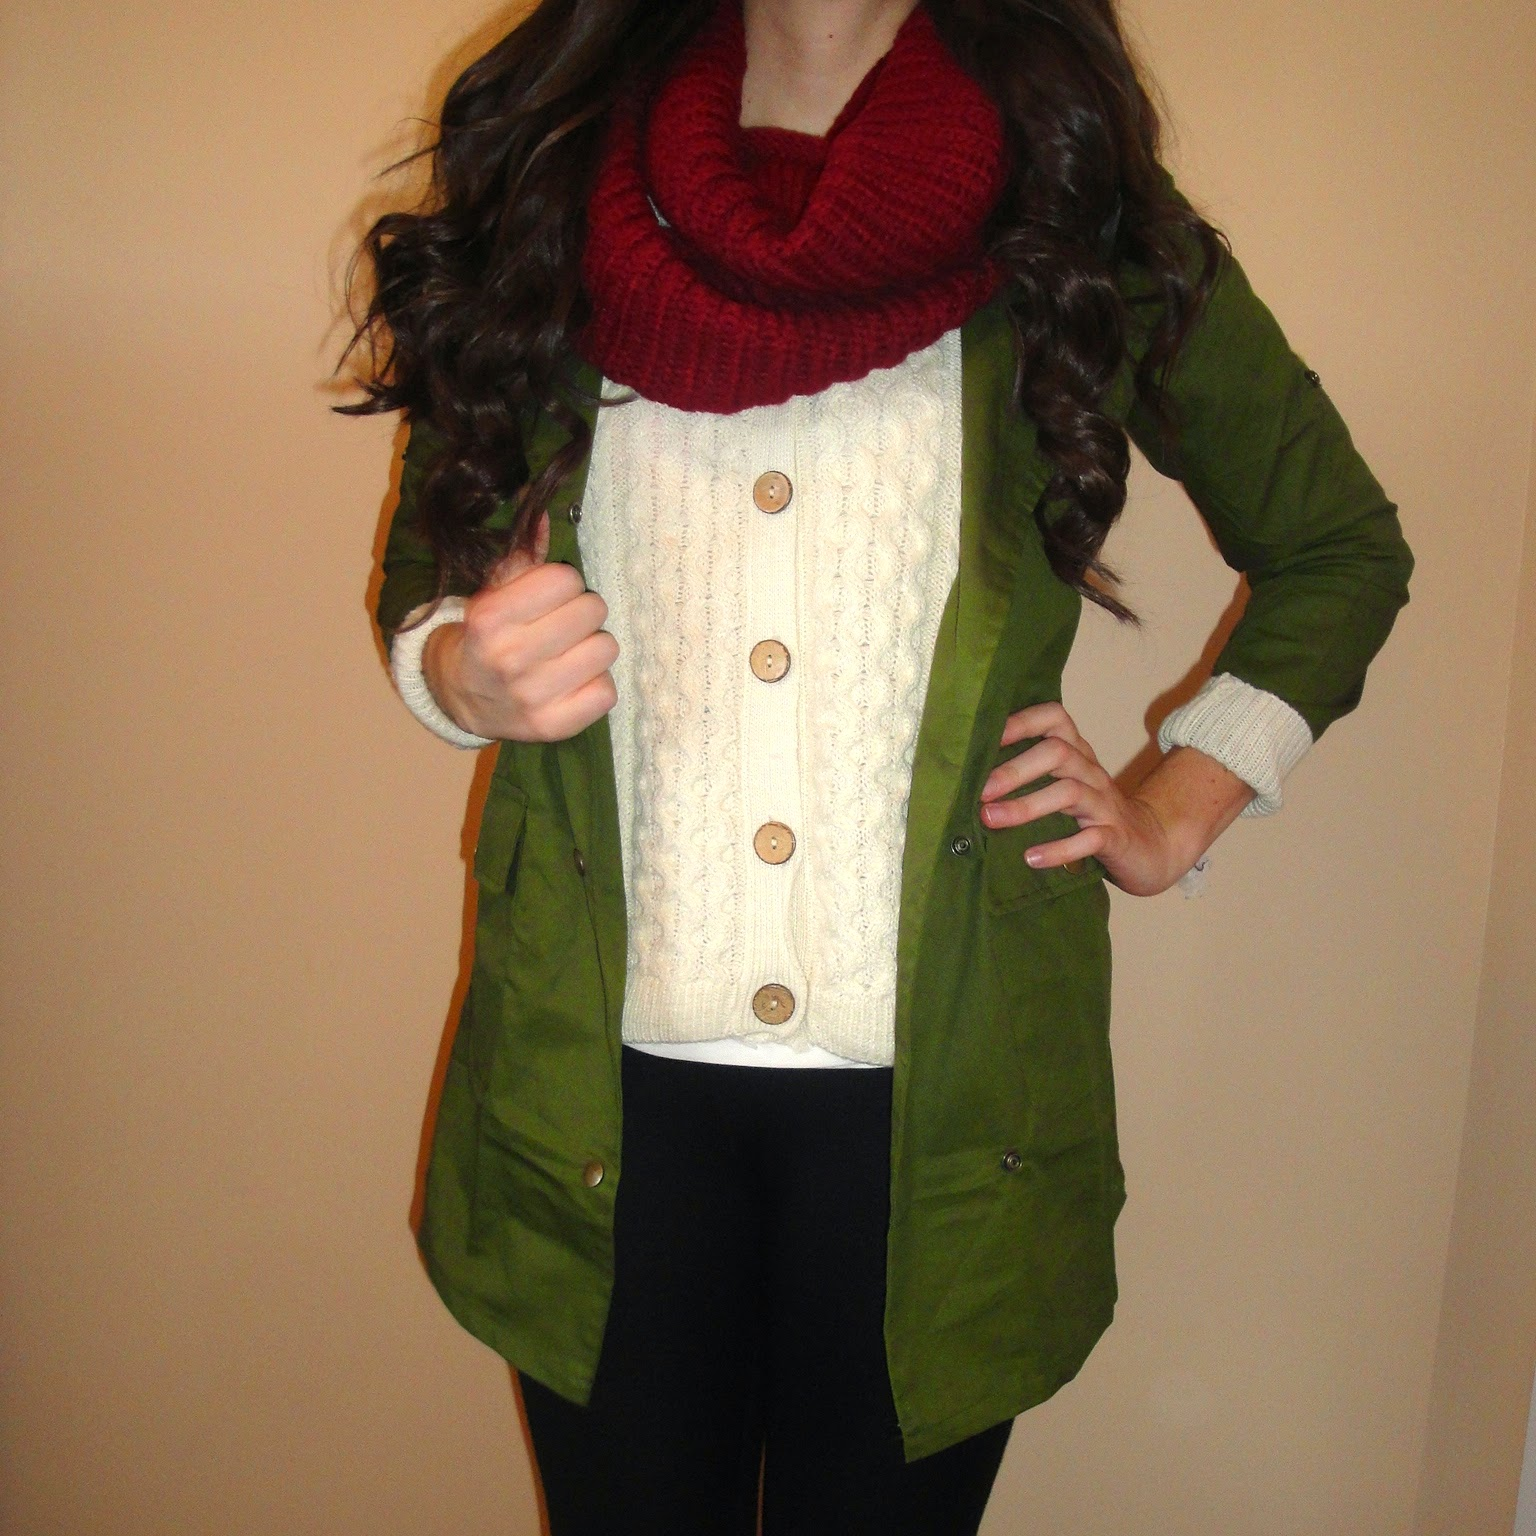 military jacket, green anorak jacket, burgundy scarf, layered look, layering for fall,